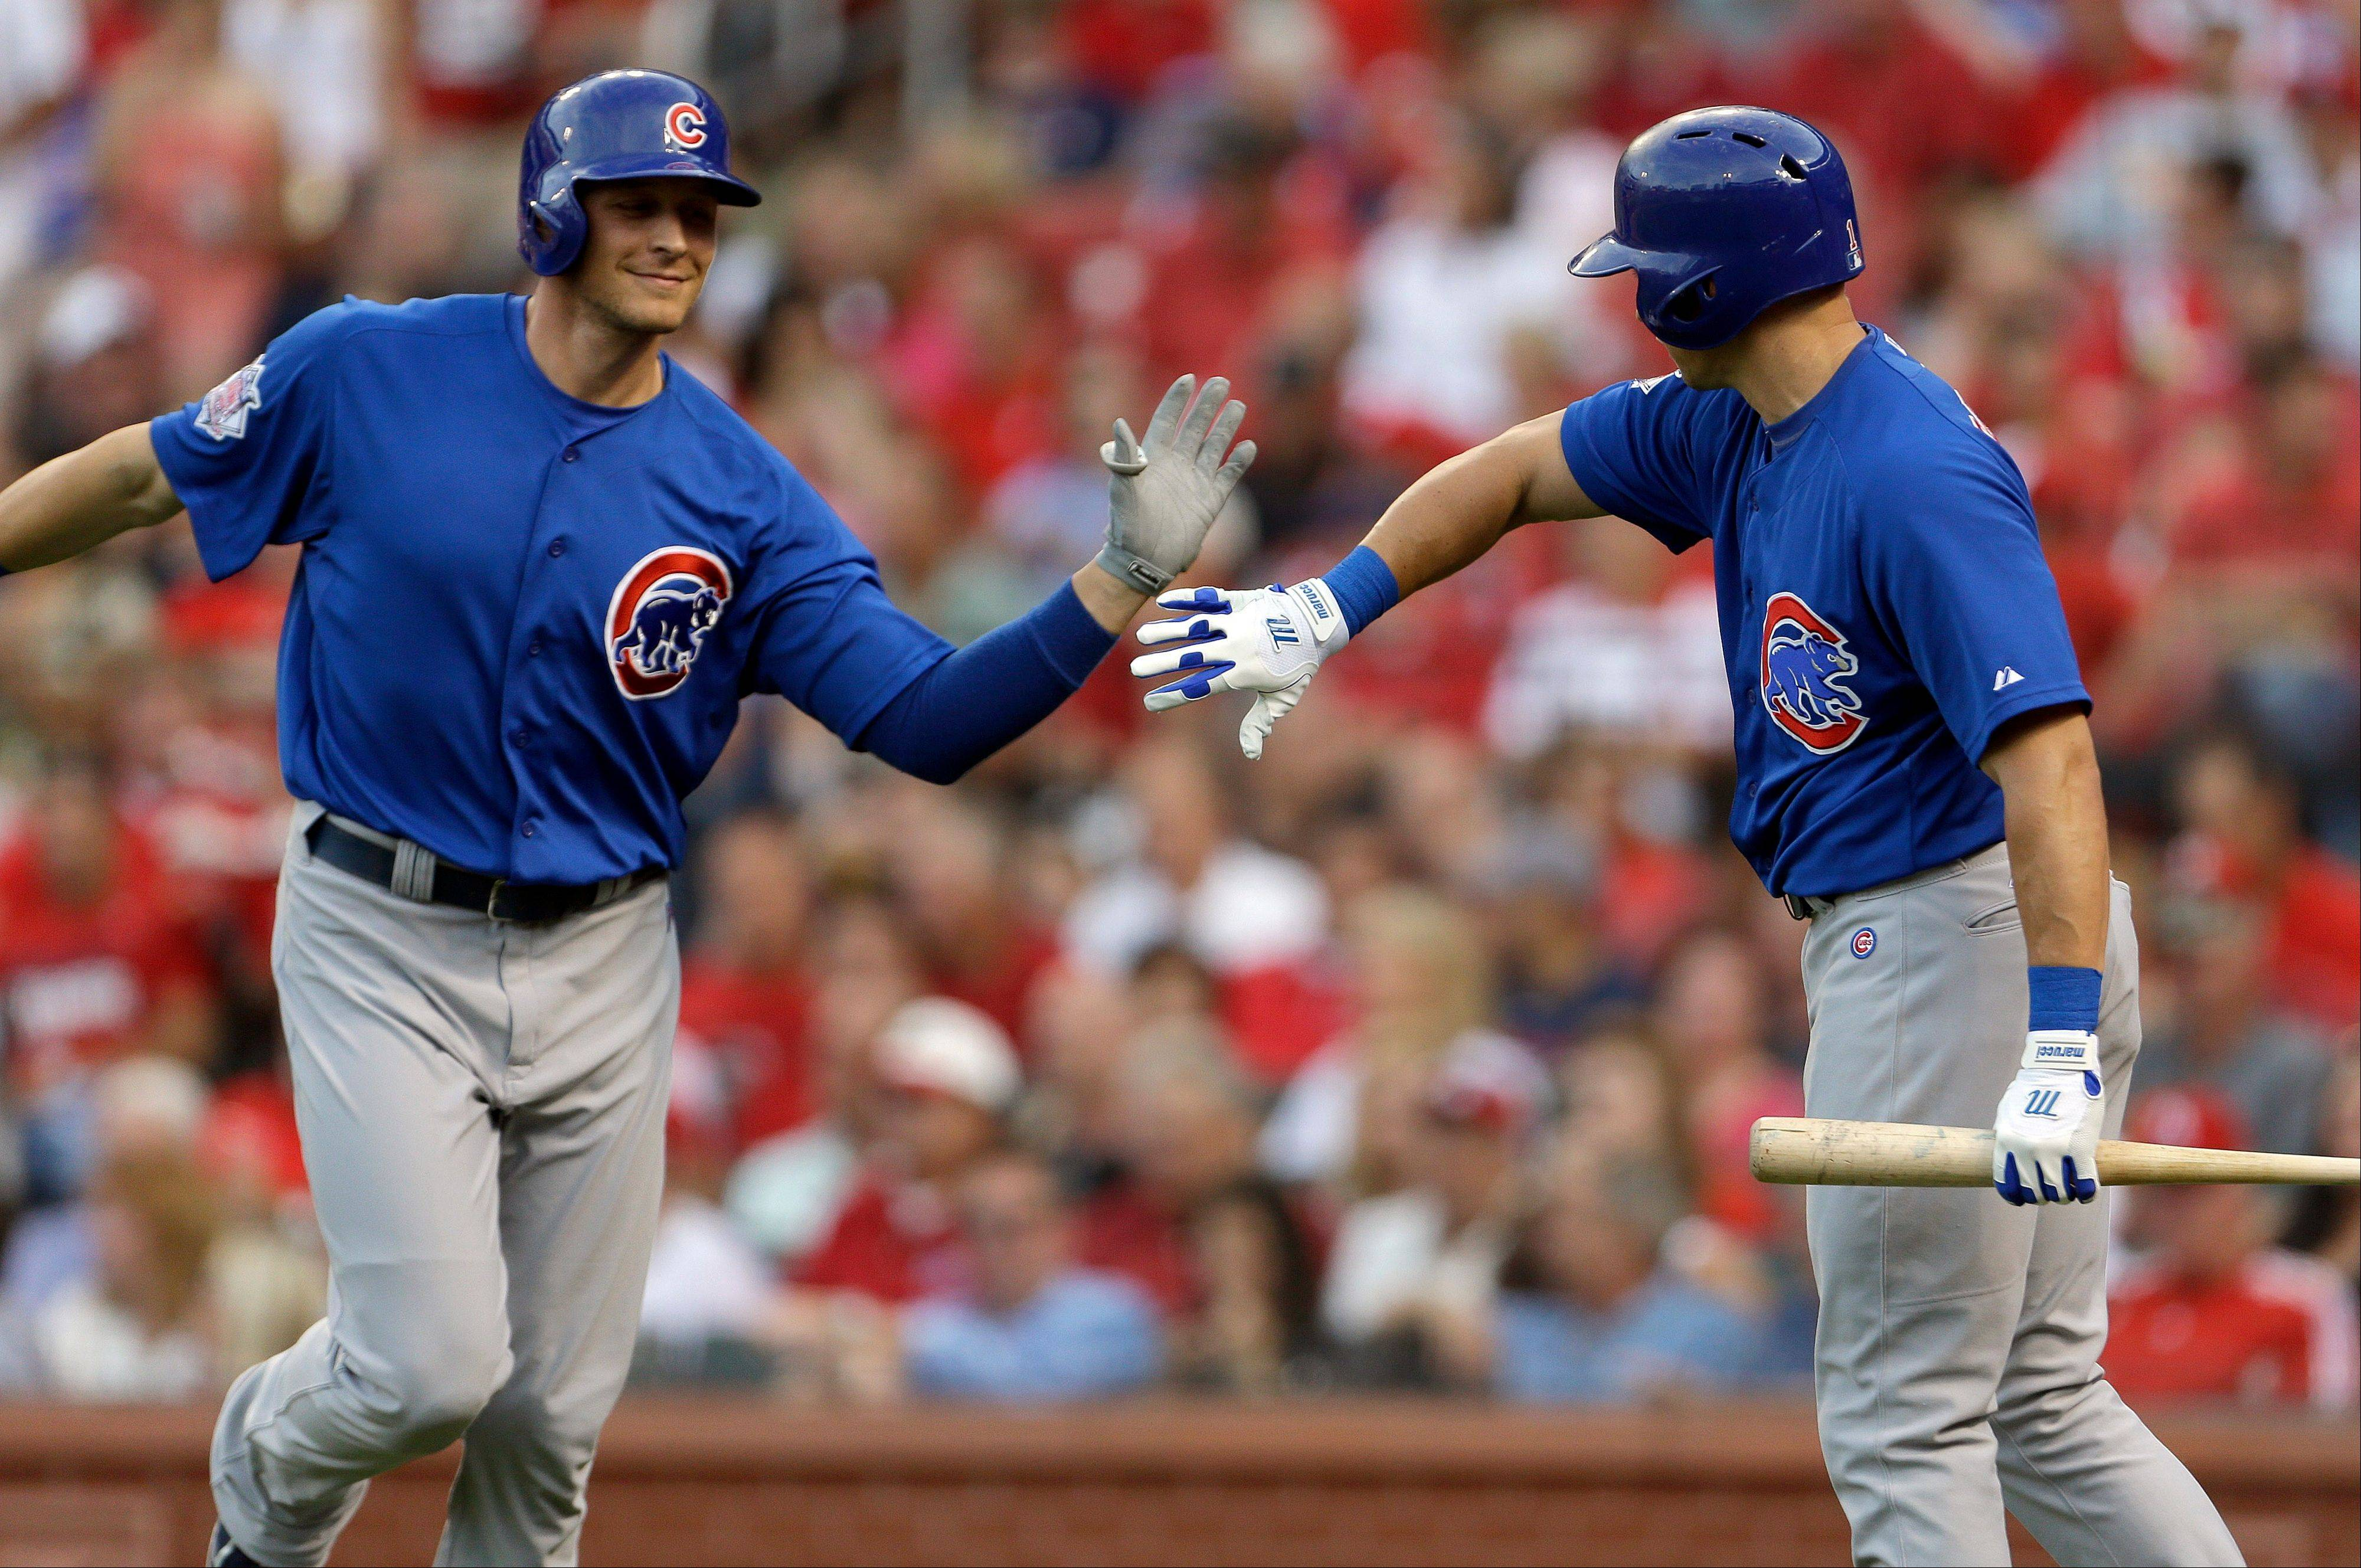 The Cubs� Ryan Sweeney, left, is congratulated by teammate Cody Ransom after hitting a two-run home run Tuesday night in St. Louis. The Cubs beat the St. Louis Cardinals 4-2.